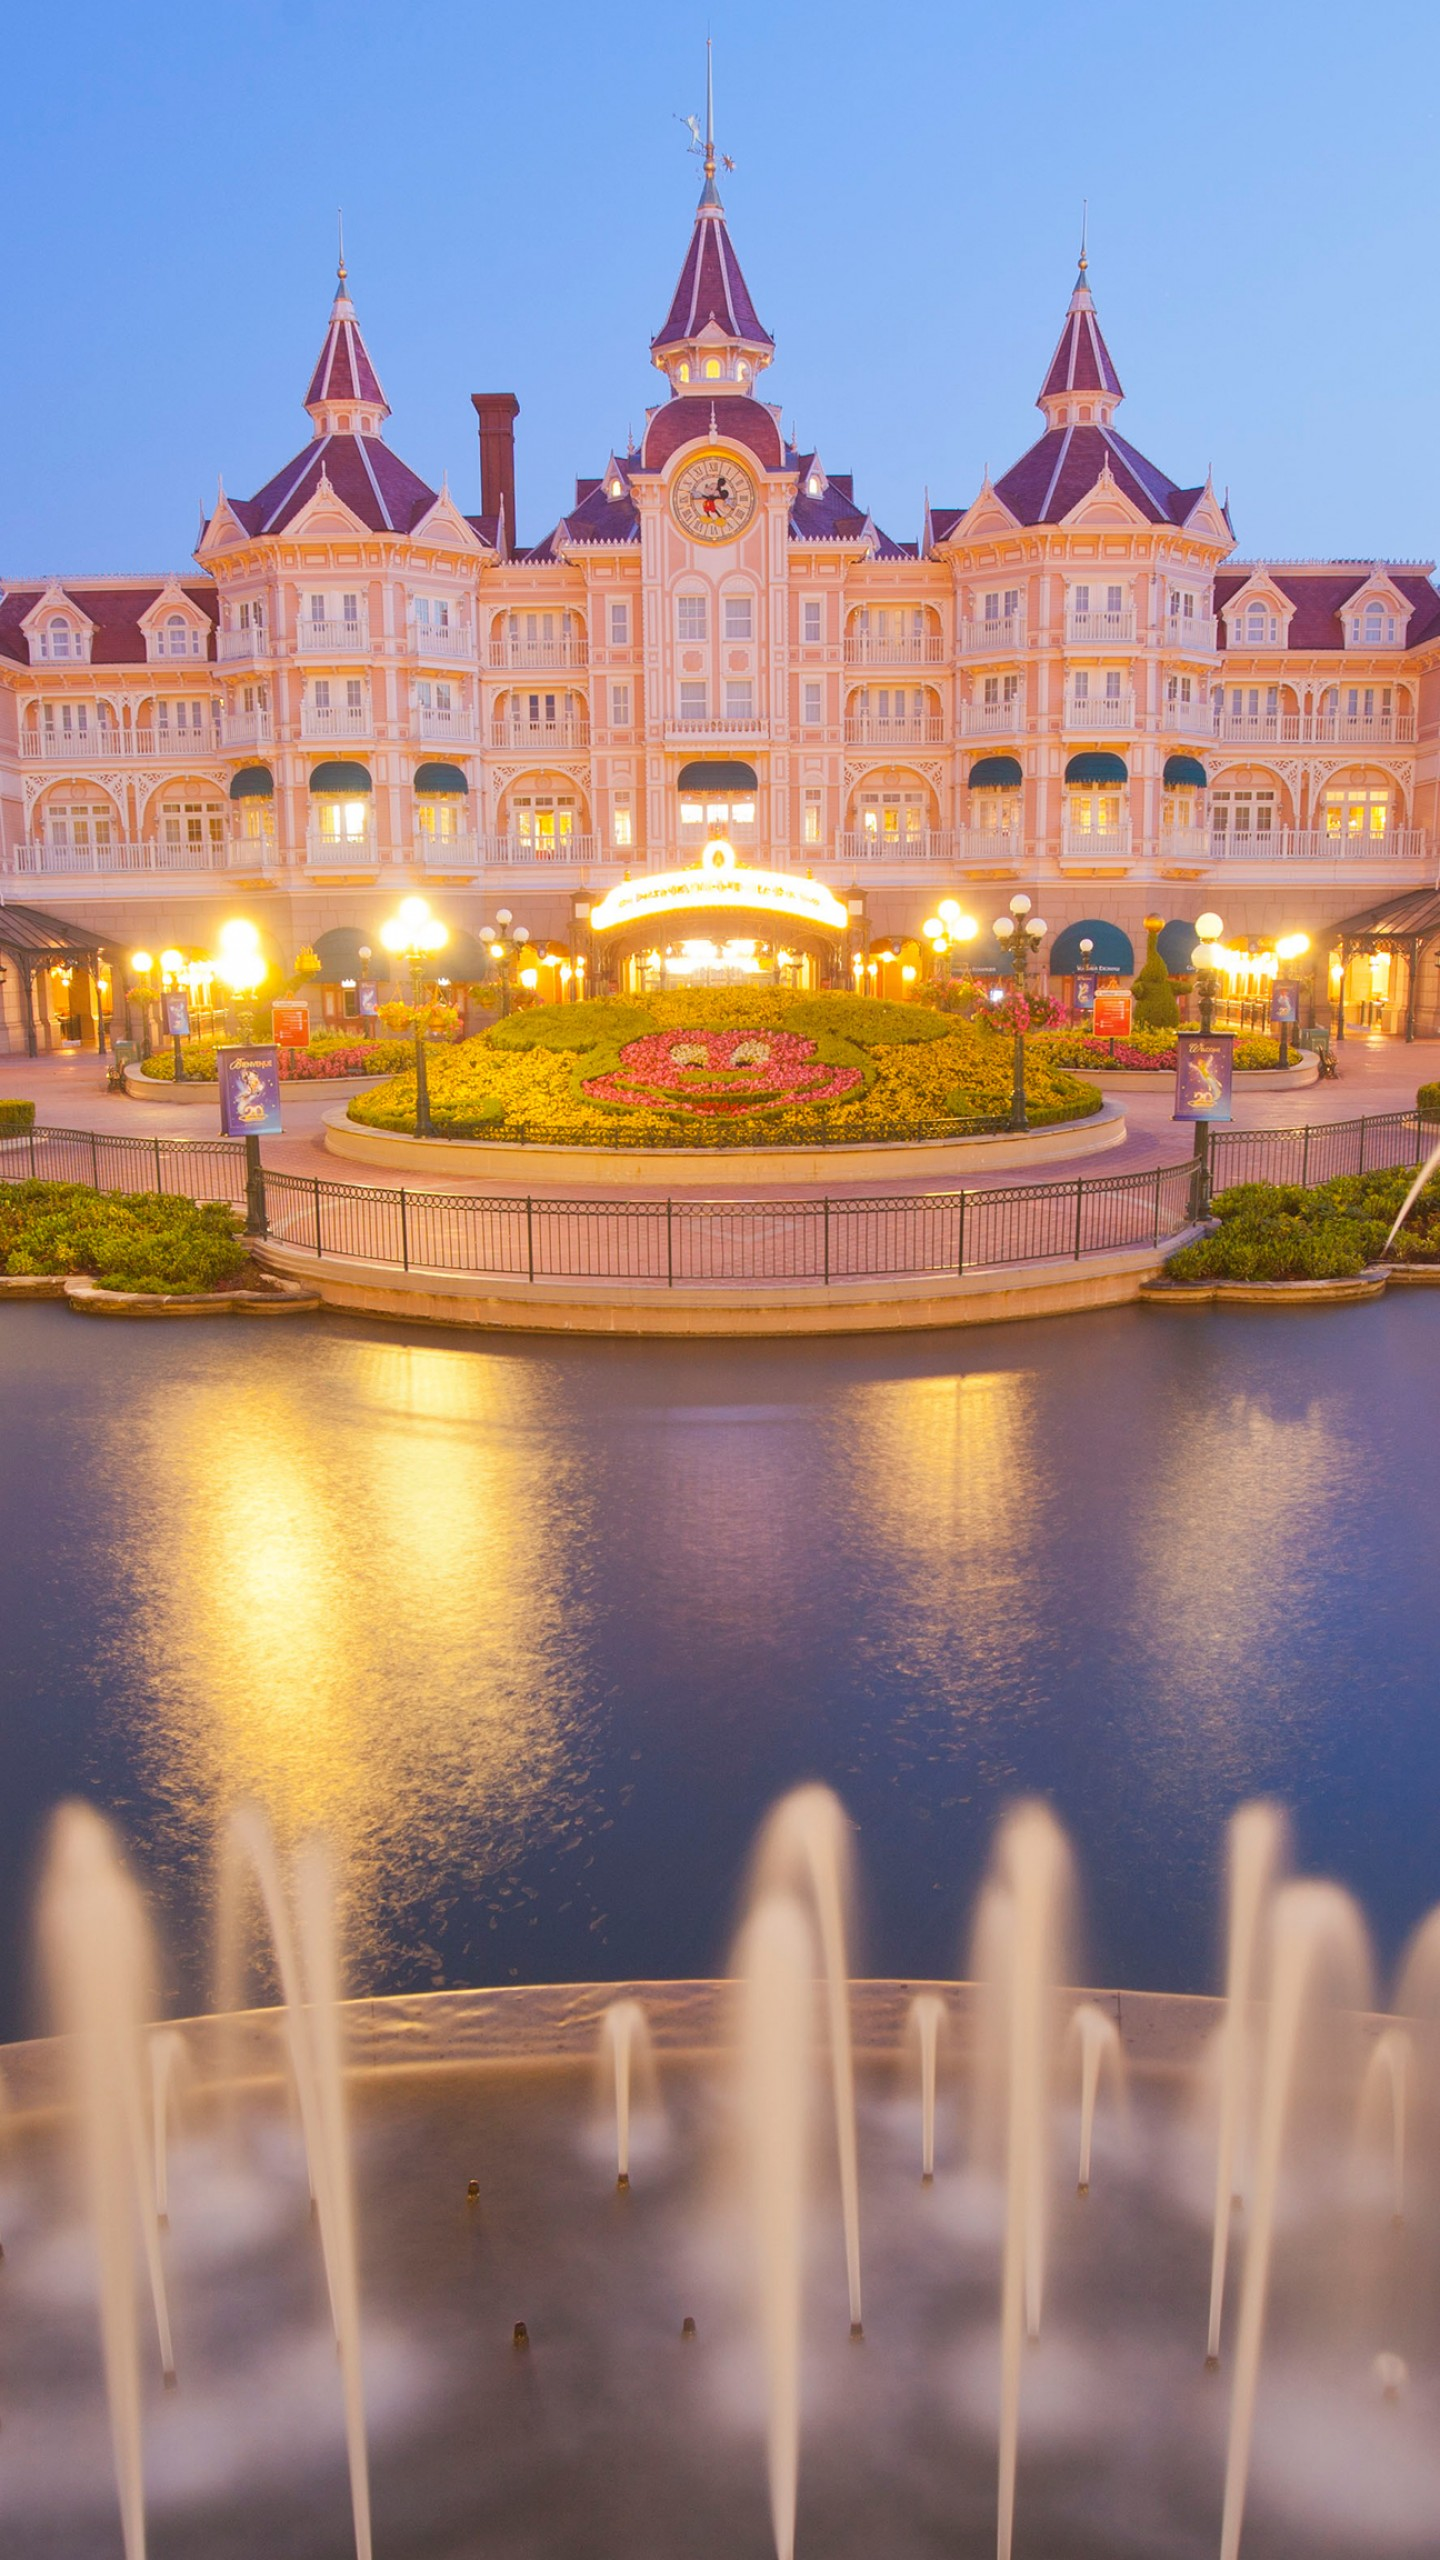 Wallpaper Disneyland Hotel Paris France Europe Fountain 4k